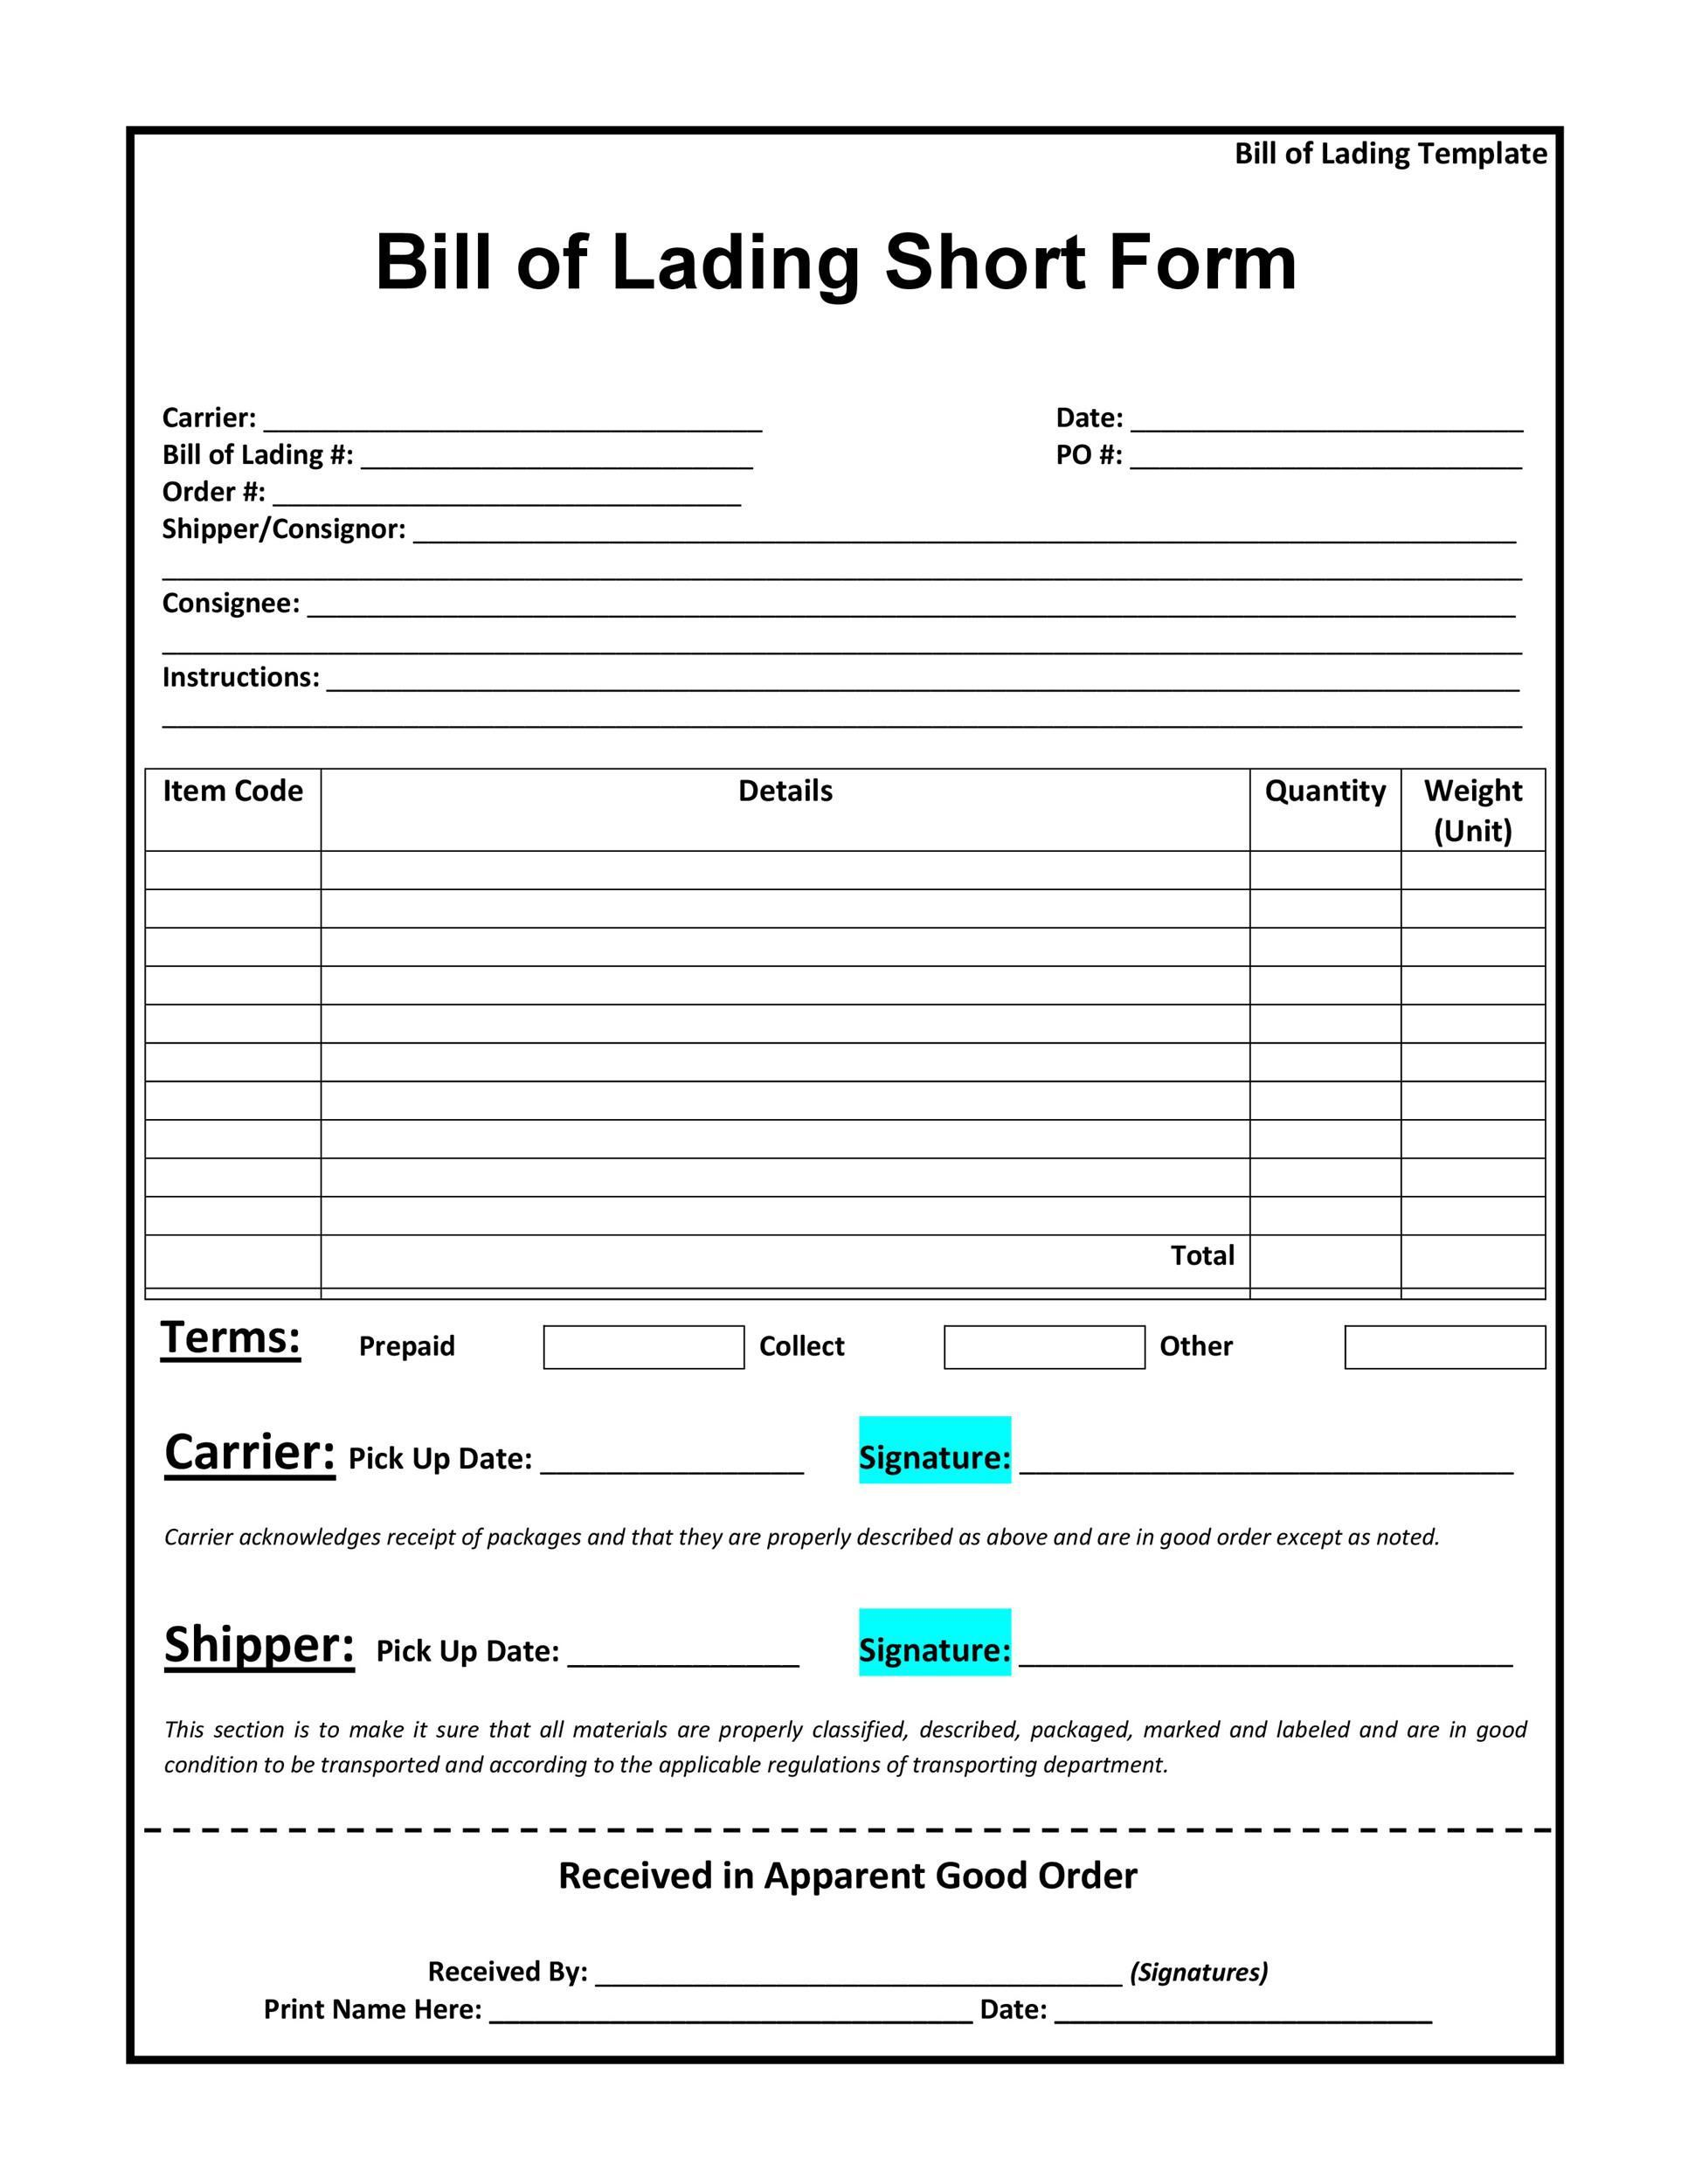 001 Simple Bill Of Lading Template Word 2003 Photo Full